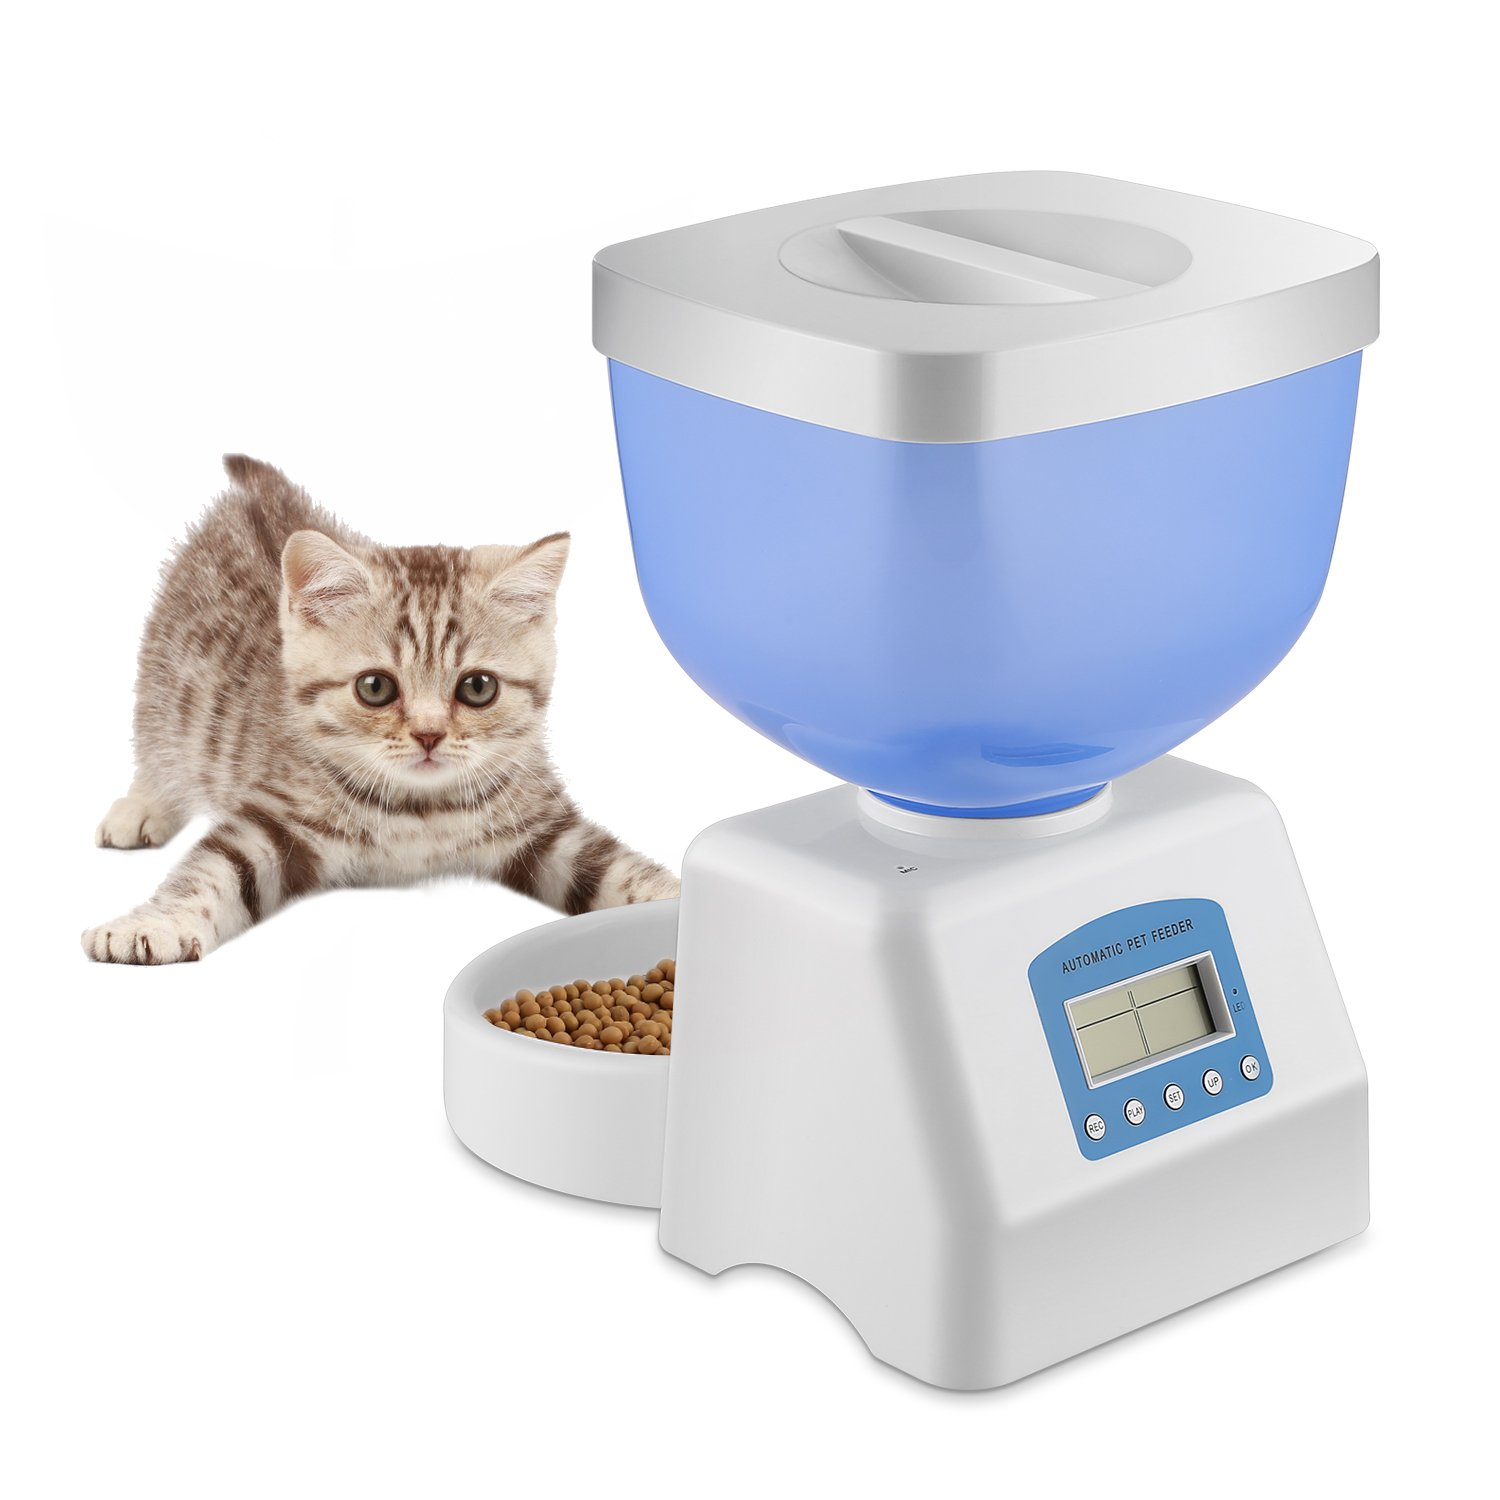 Homgrace New Version Automatic Cat Feeder Food Dispenser with LED Display, Voice Recording, Timer Programmable